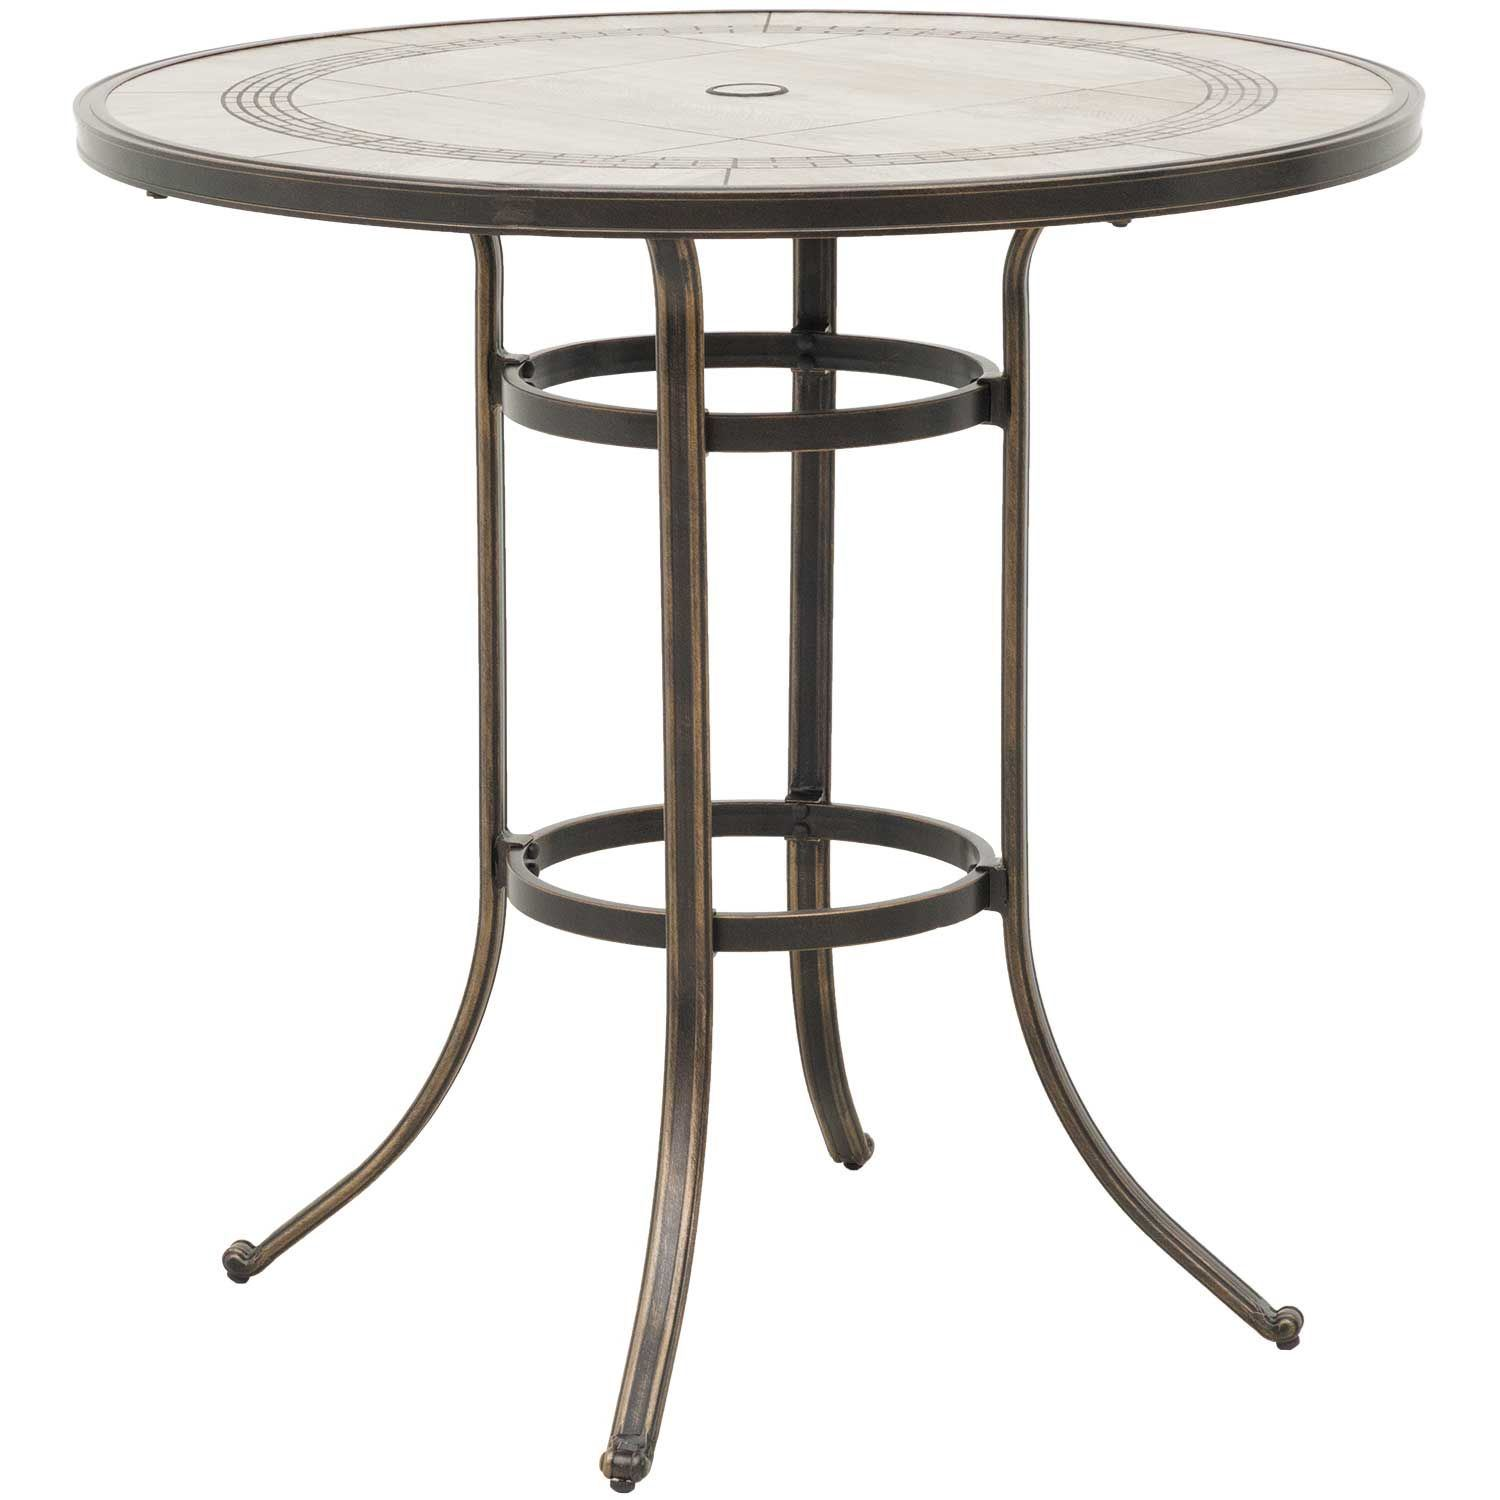 Barnwood 42 Quot Round Tile Top Patio Bar Table T R42b T6